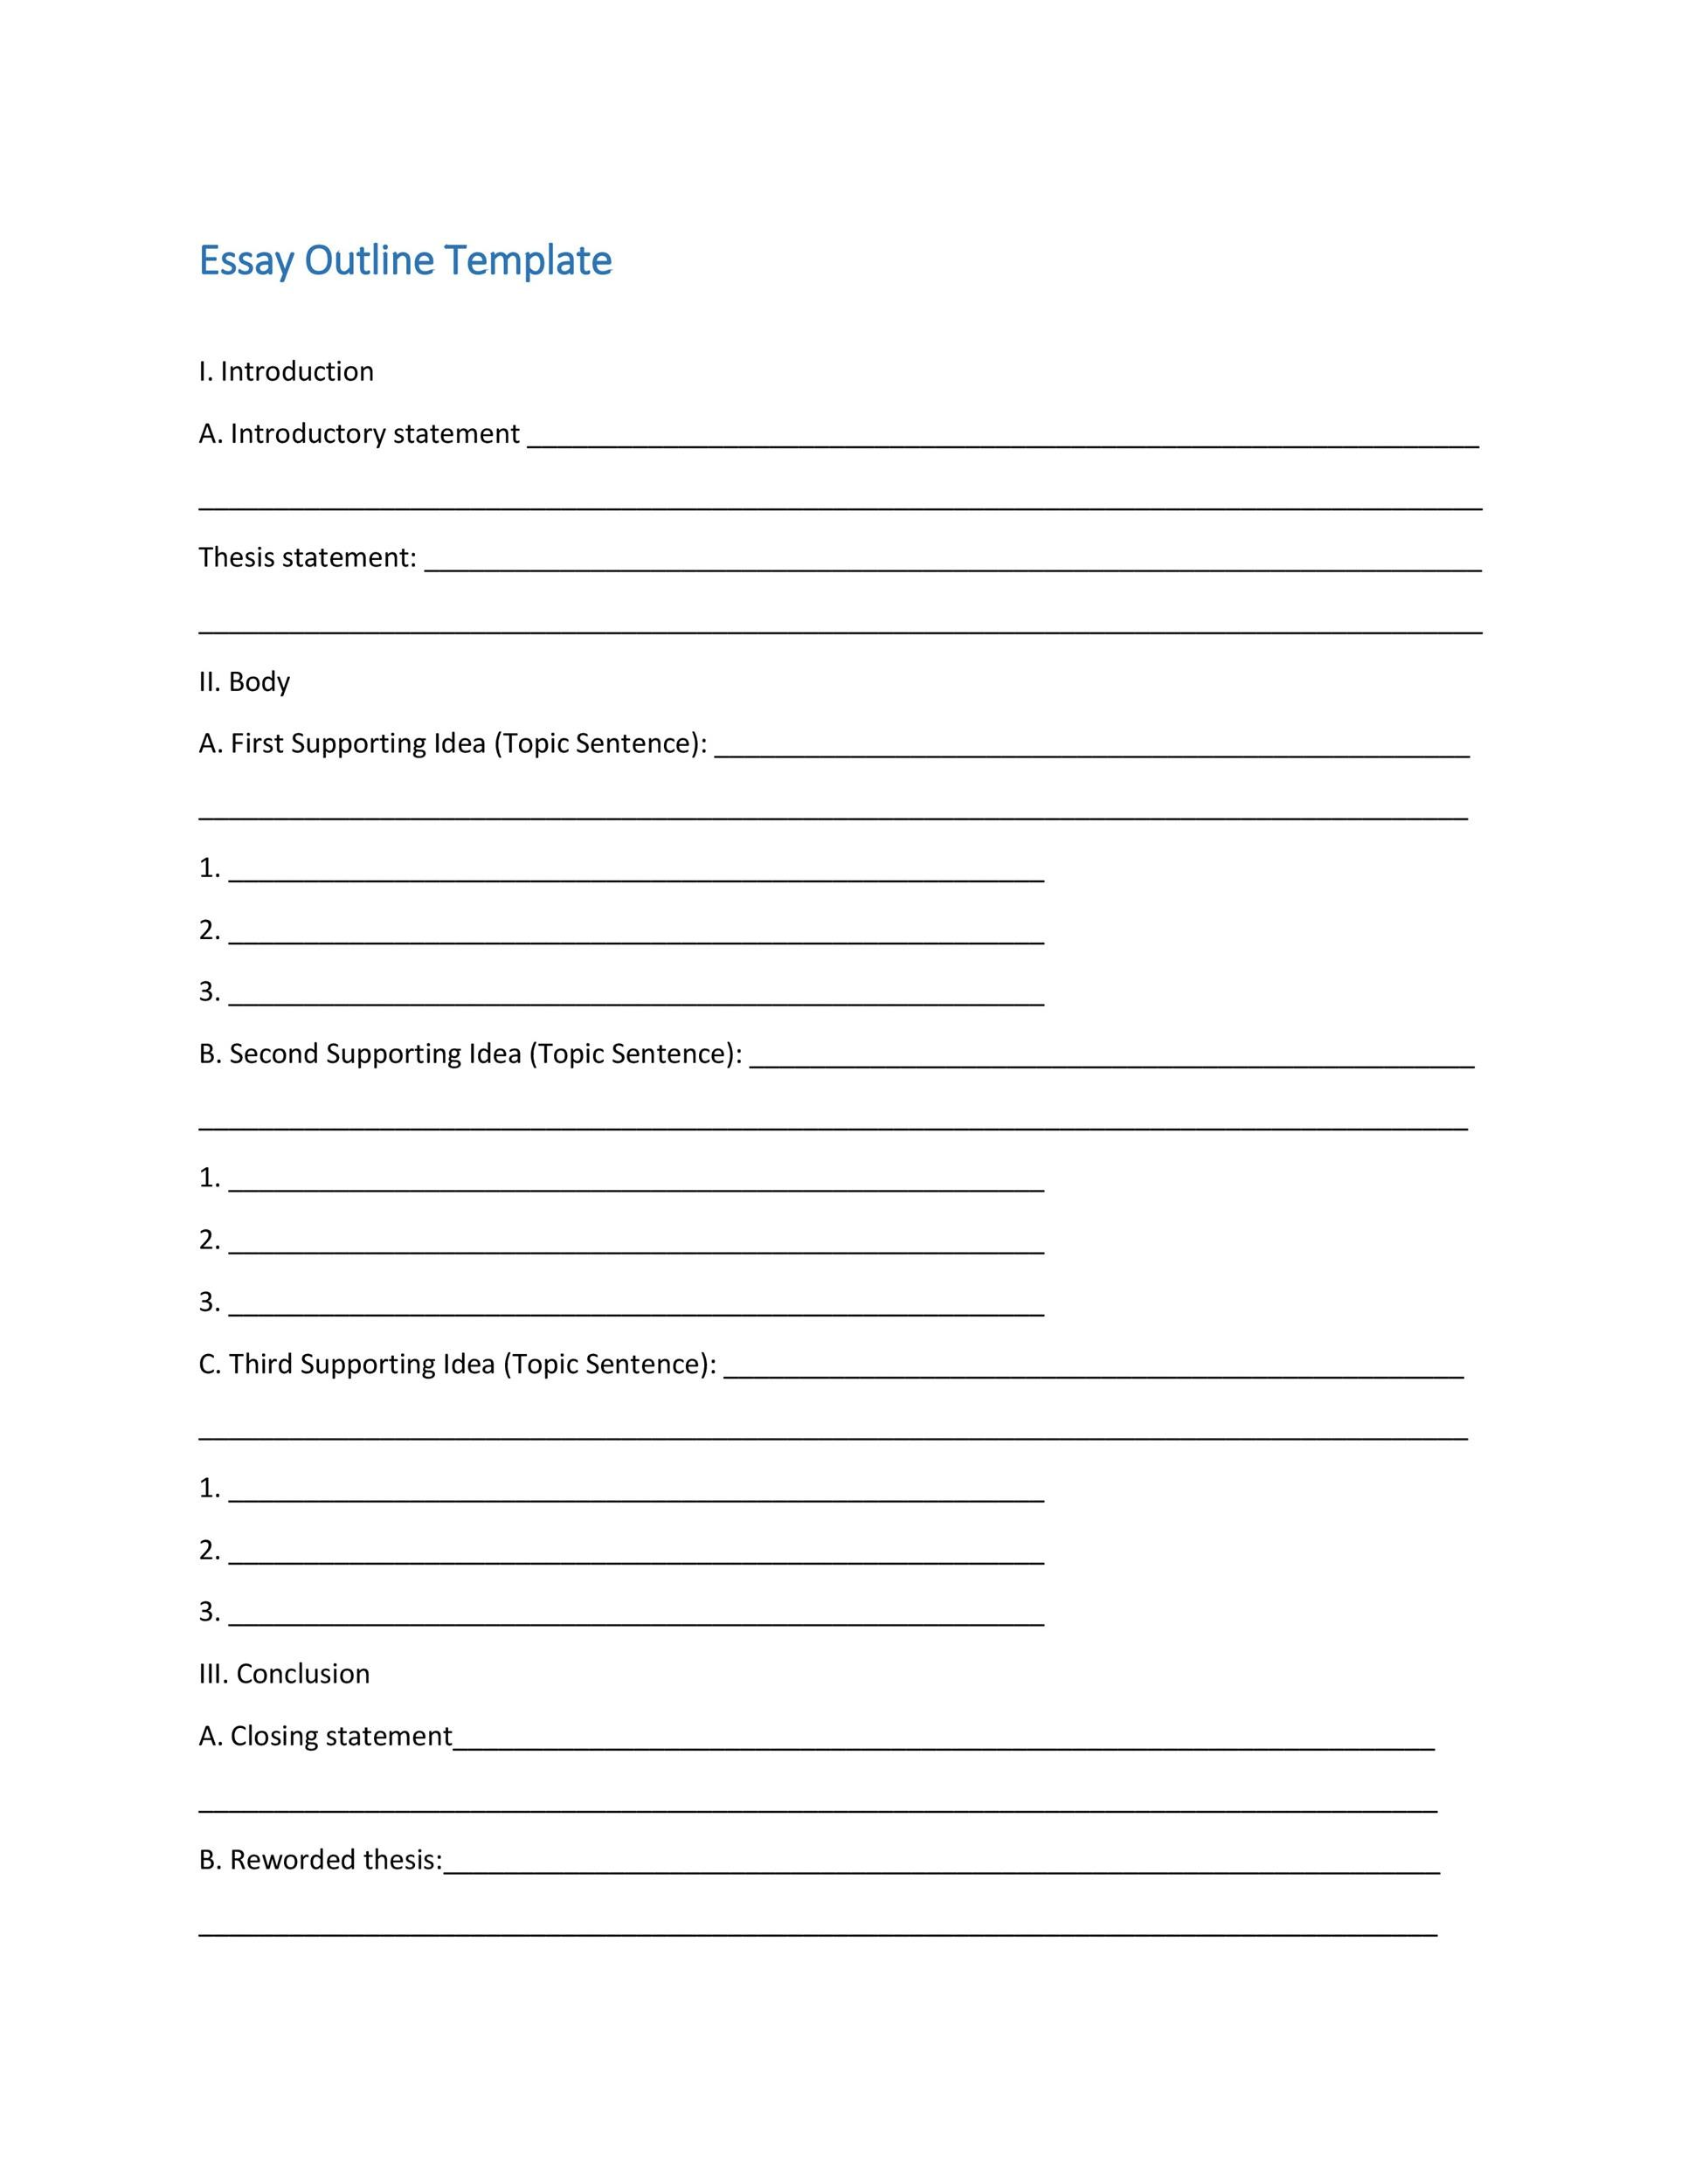 Free Essay Outline Template 05